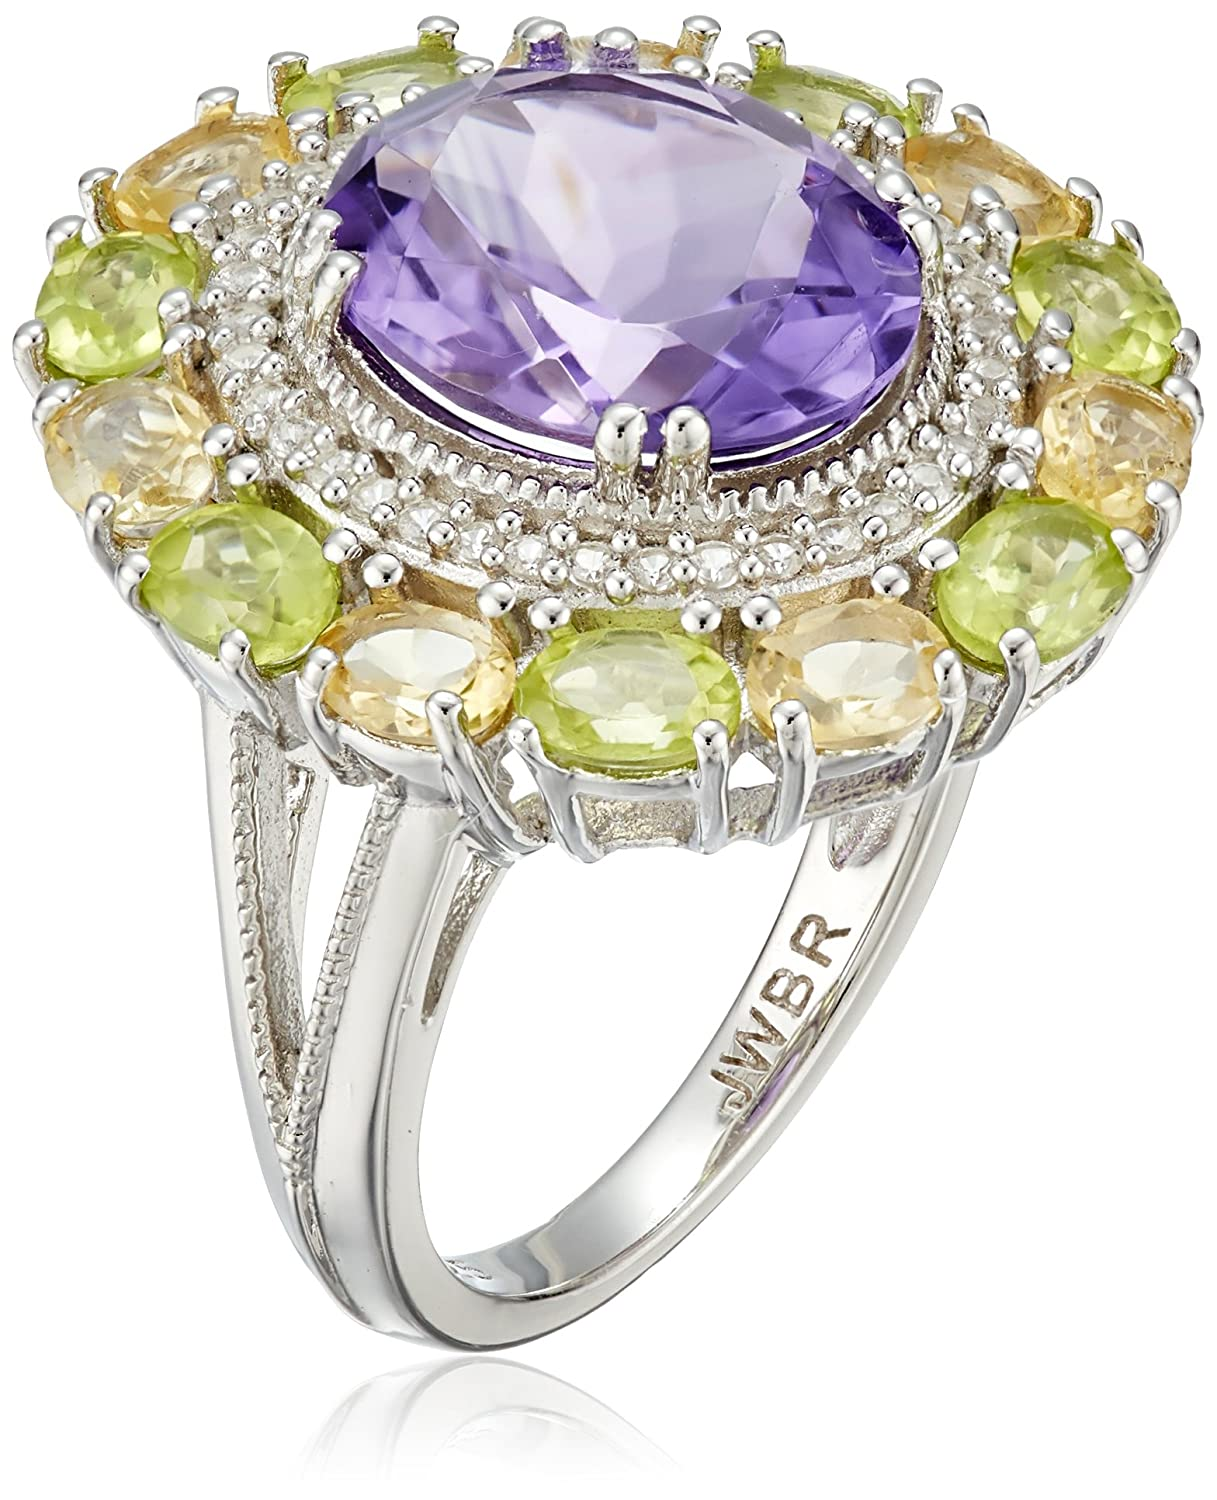 Sterling Silver Oval Shape Amethyst, Citrine and Peridot with Round Created White Sapphire Cocktail Ring